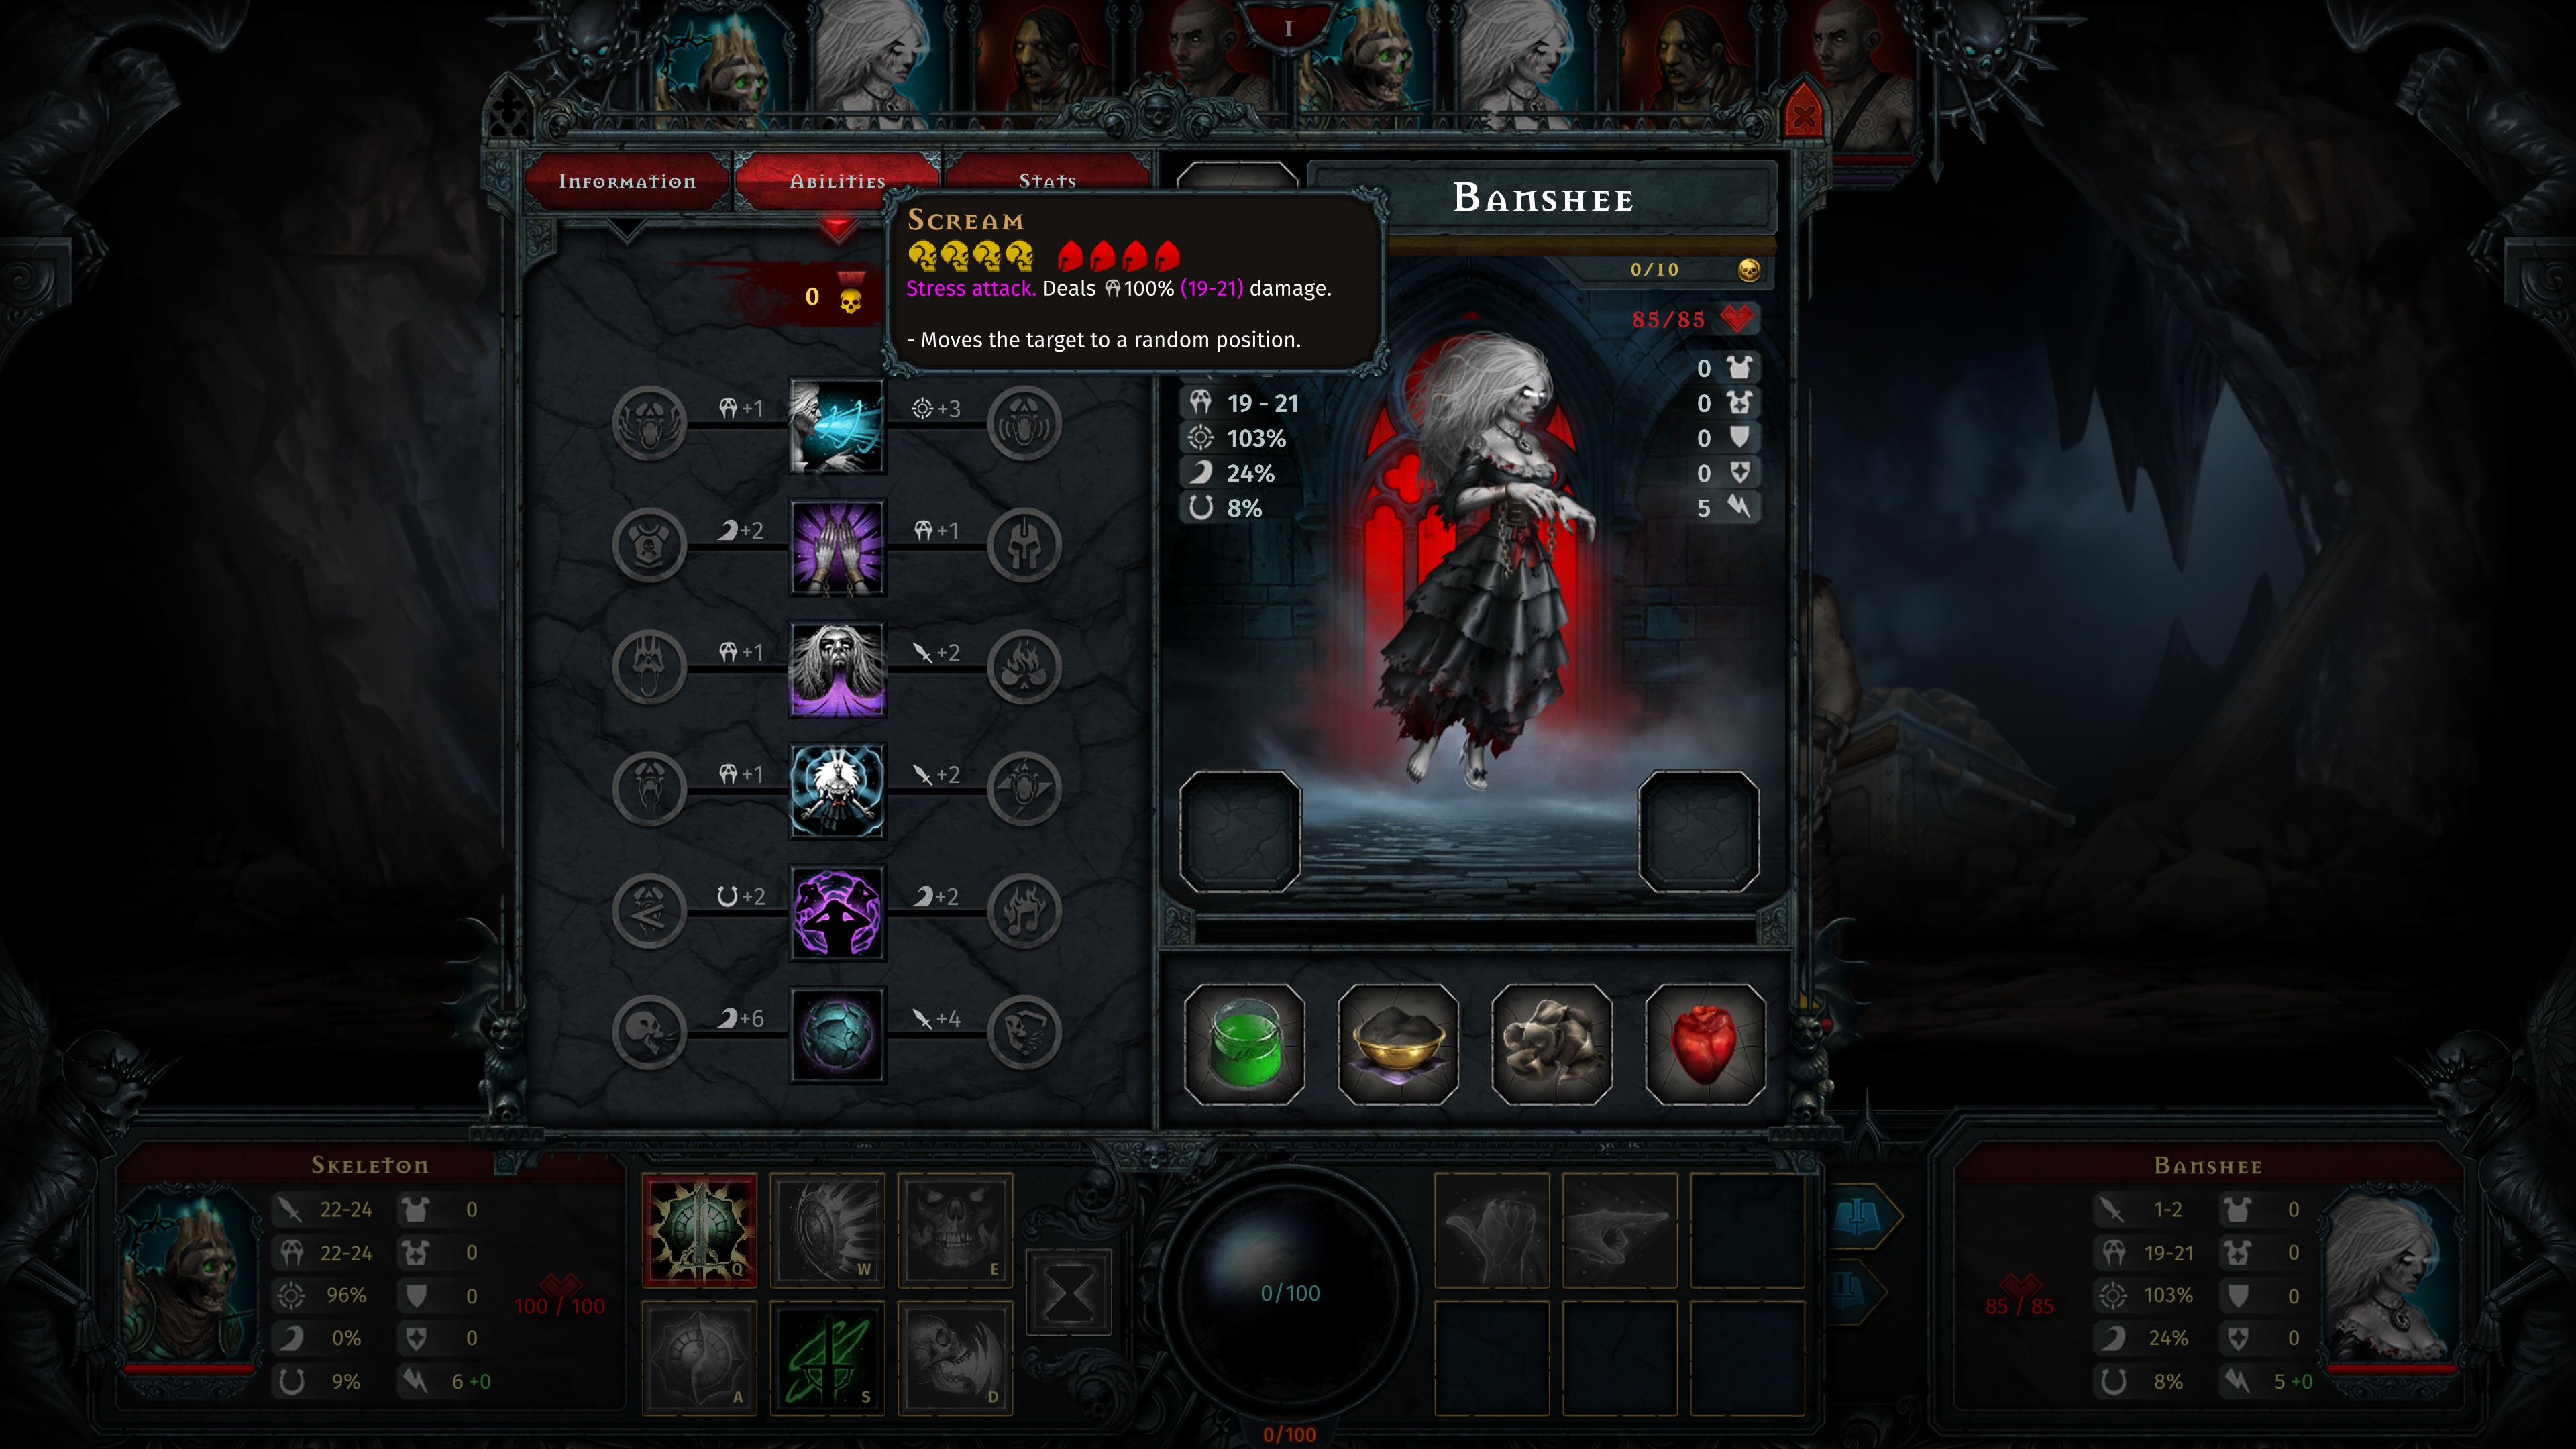 Iratus  Lord of the Dead. Stats and abilities of a level 1 banshee.